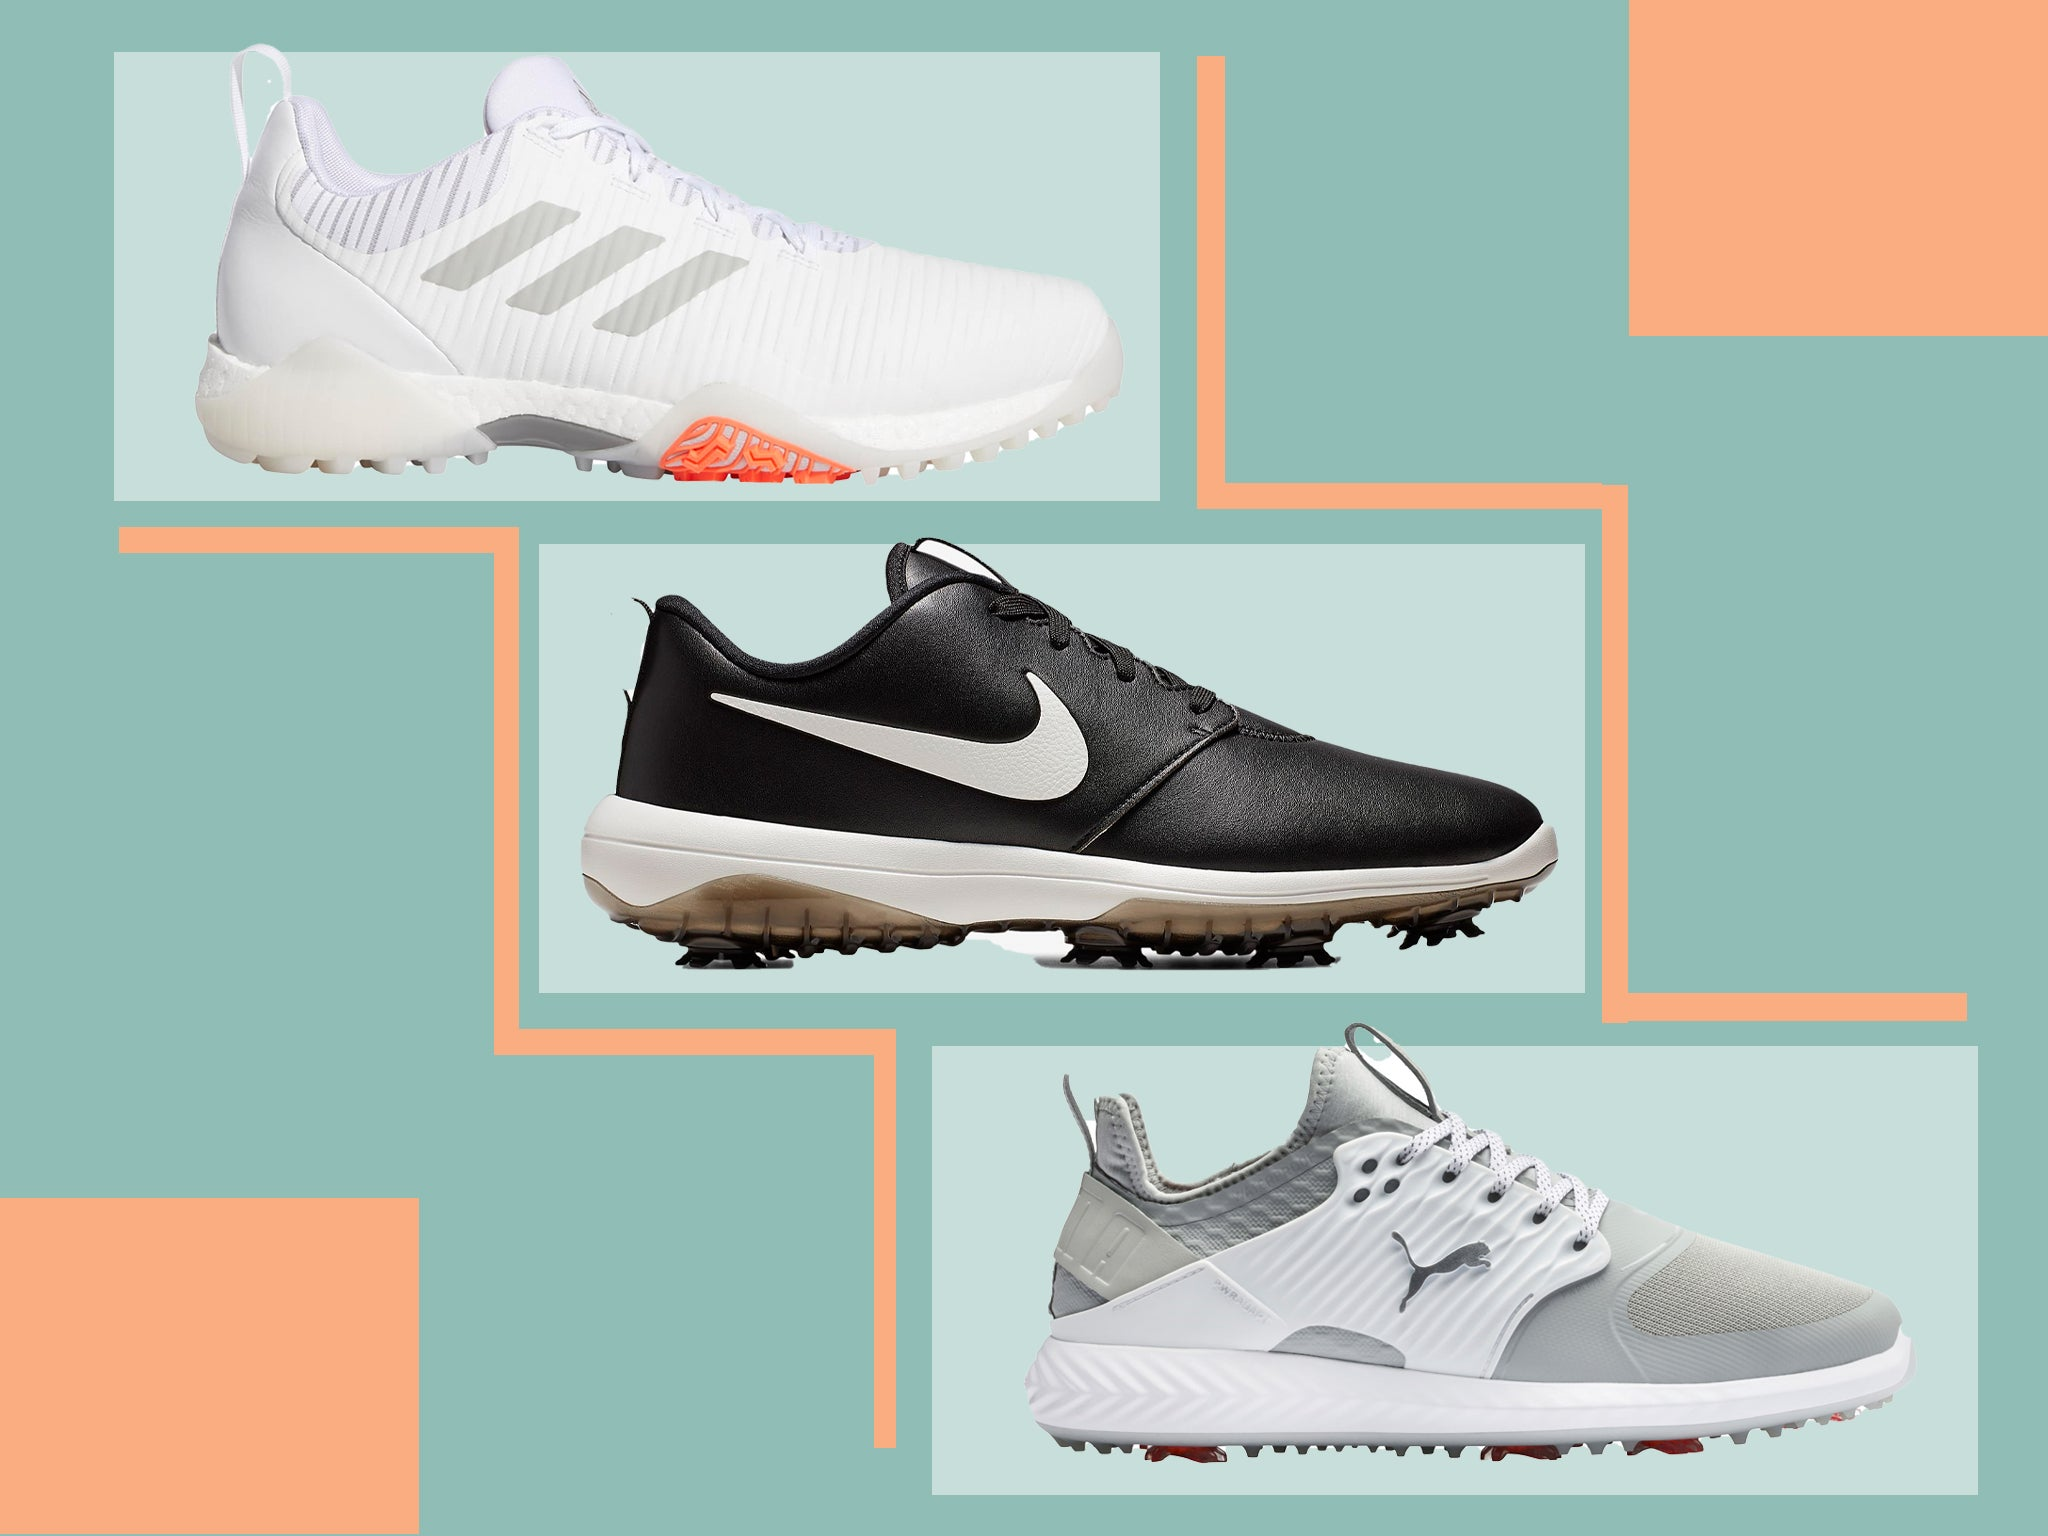 Best Men S Golf Shoes 2020 Spiked Spikeless Or Waterproof Designs Independent